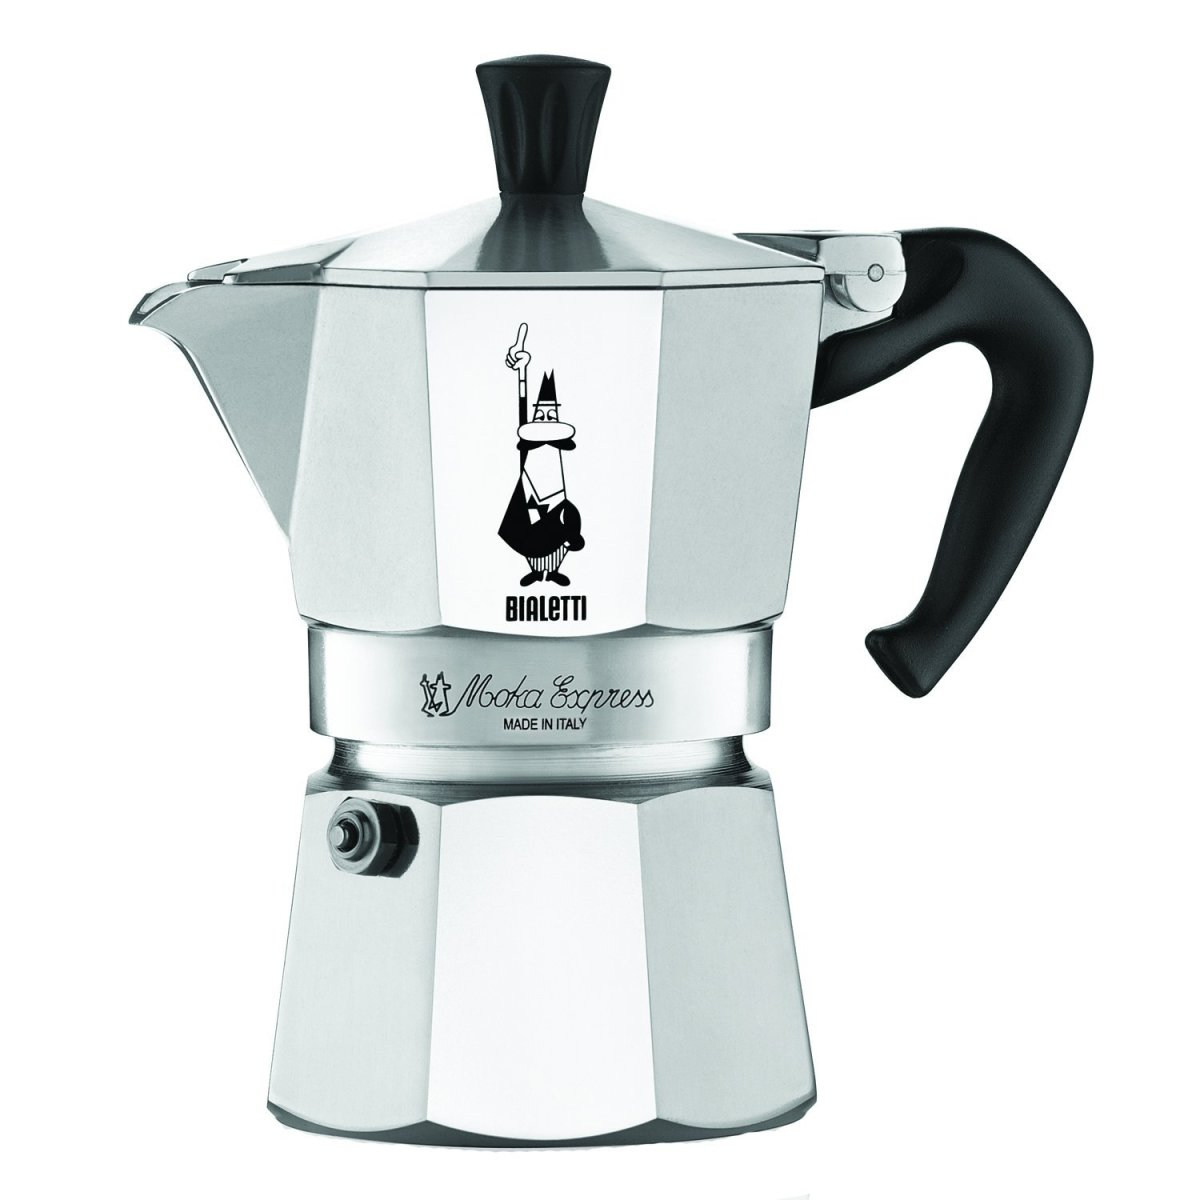 The Bialetti uses a classic design that dates back to the 1930's.  It is attractive, functional, affordable, and durable.  I currently have the ,6-cup version but there are lots of other sizes available according to needs.